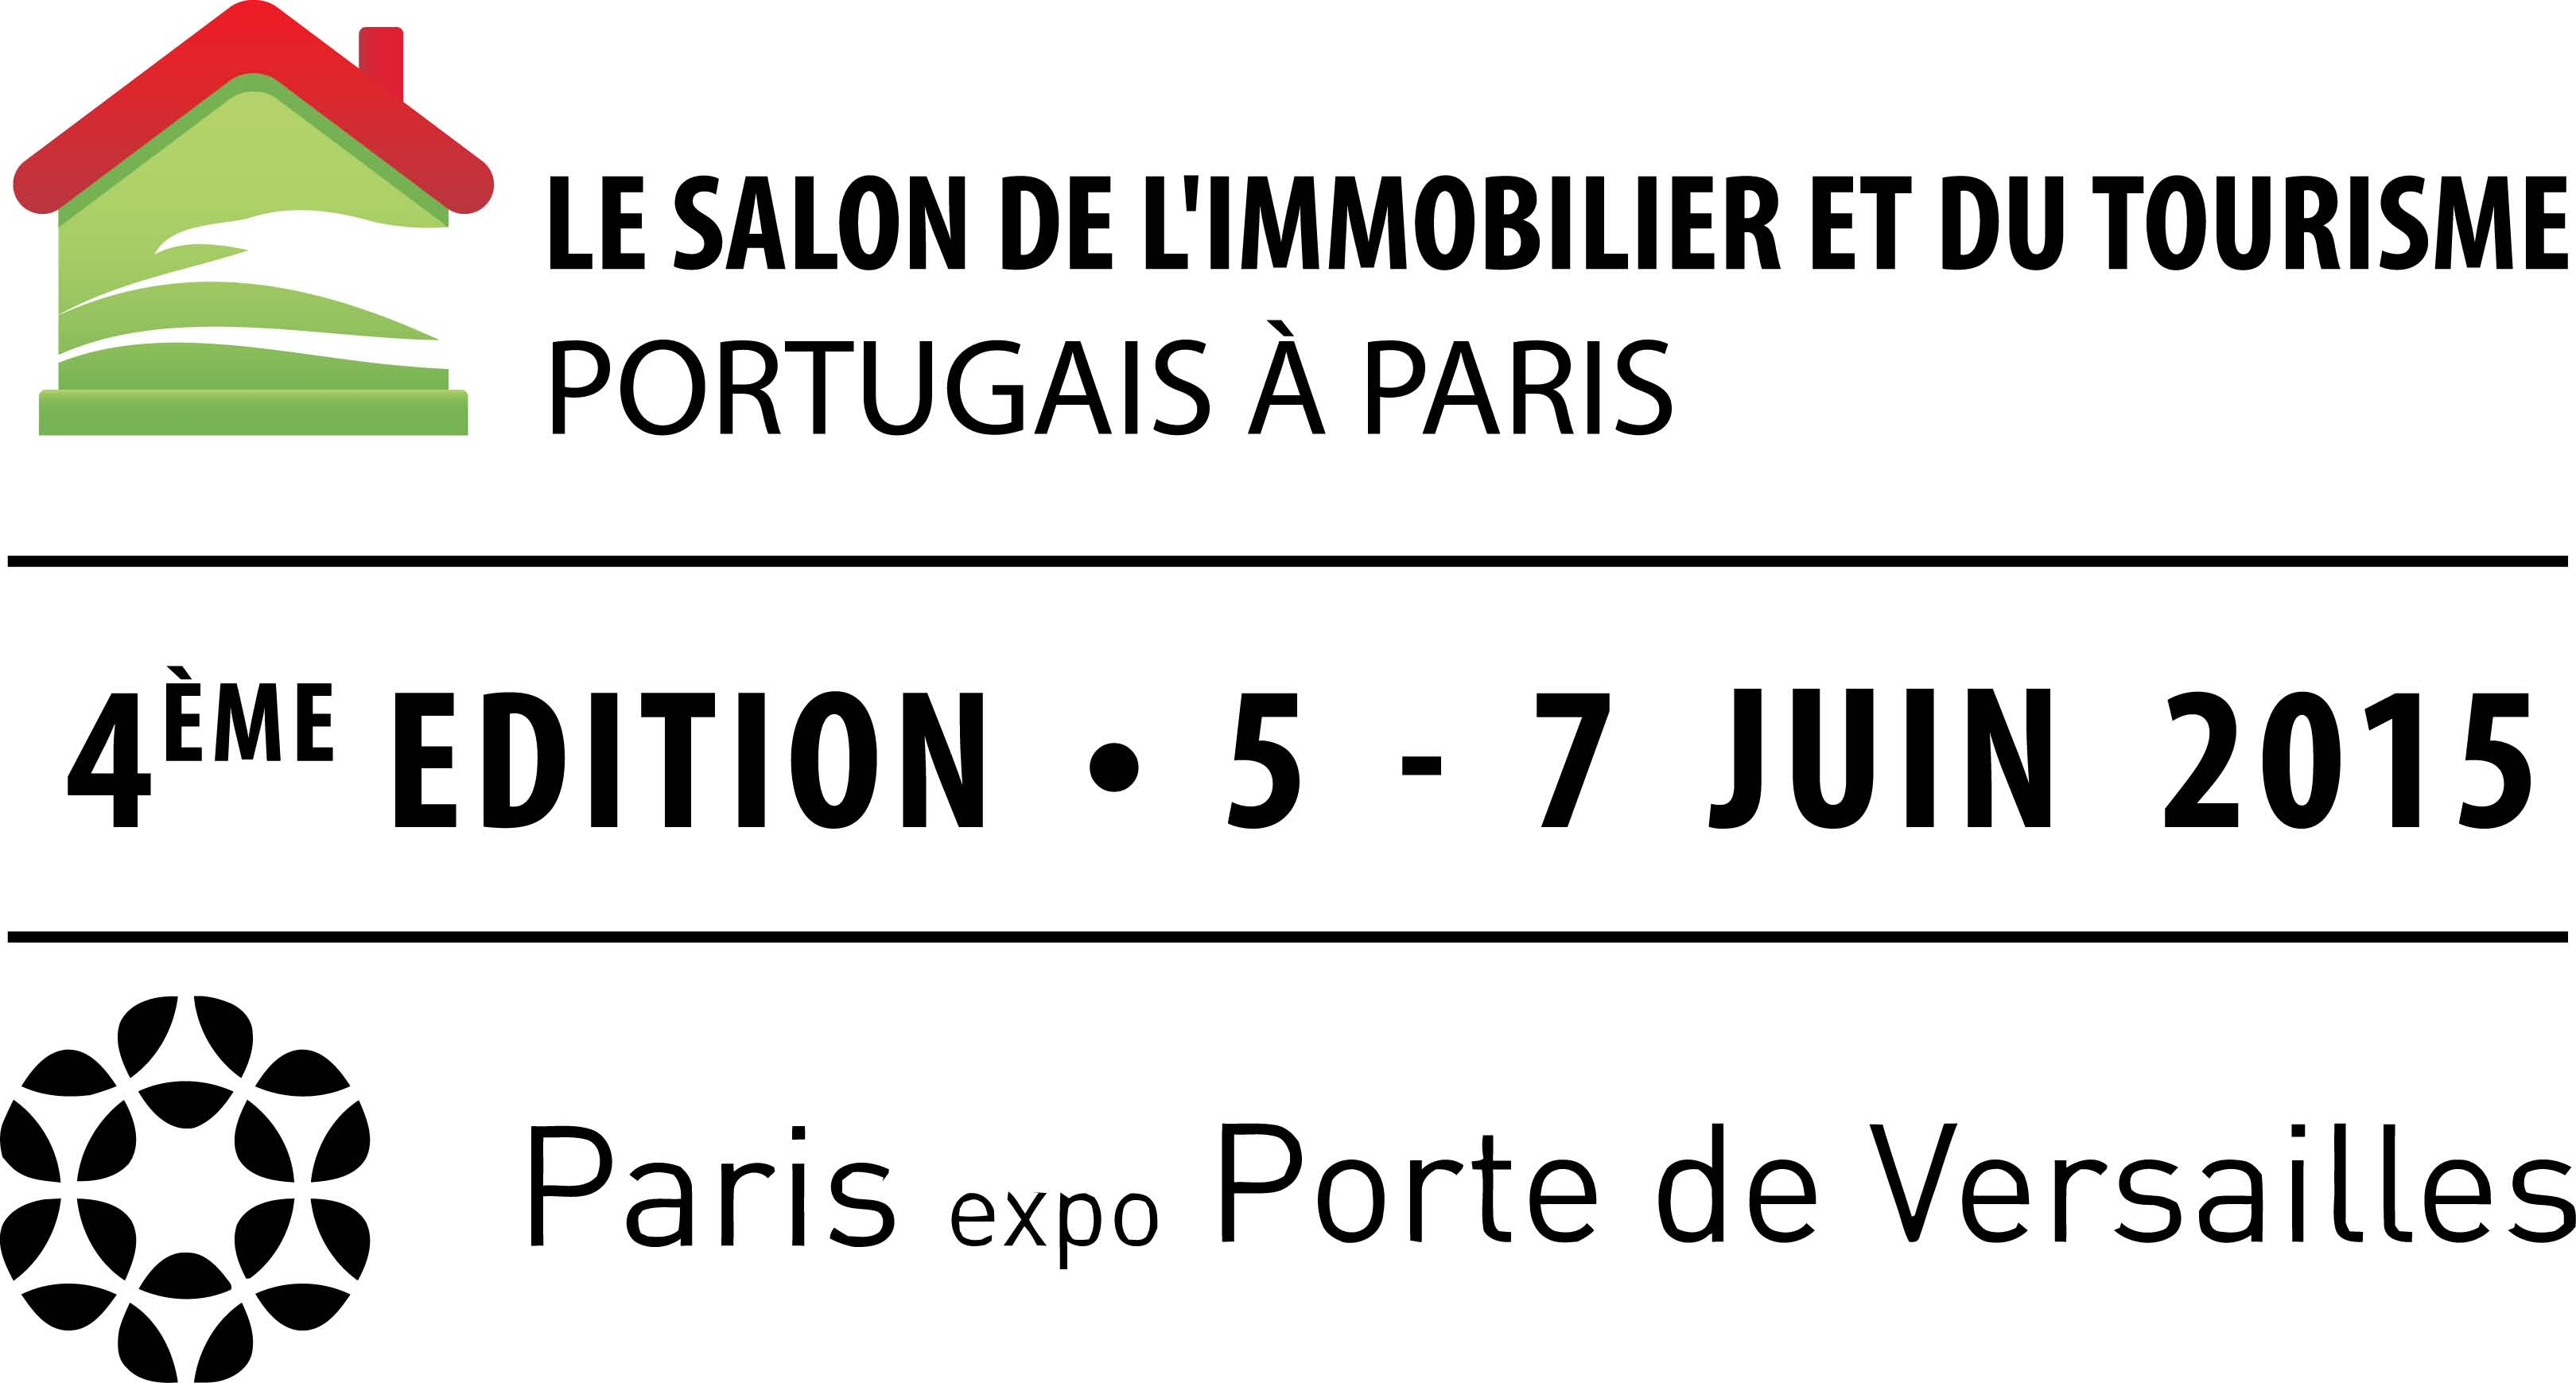 l 39 immobilier au portugal tient salon paris du 5 au 7